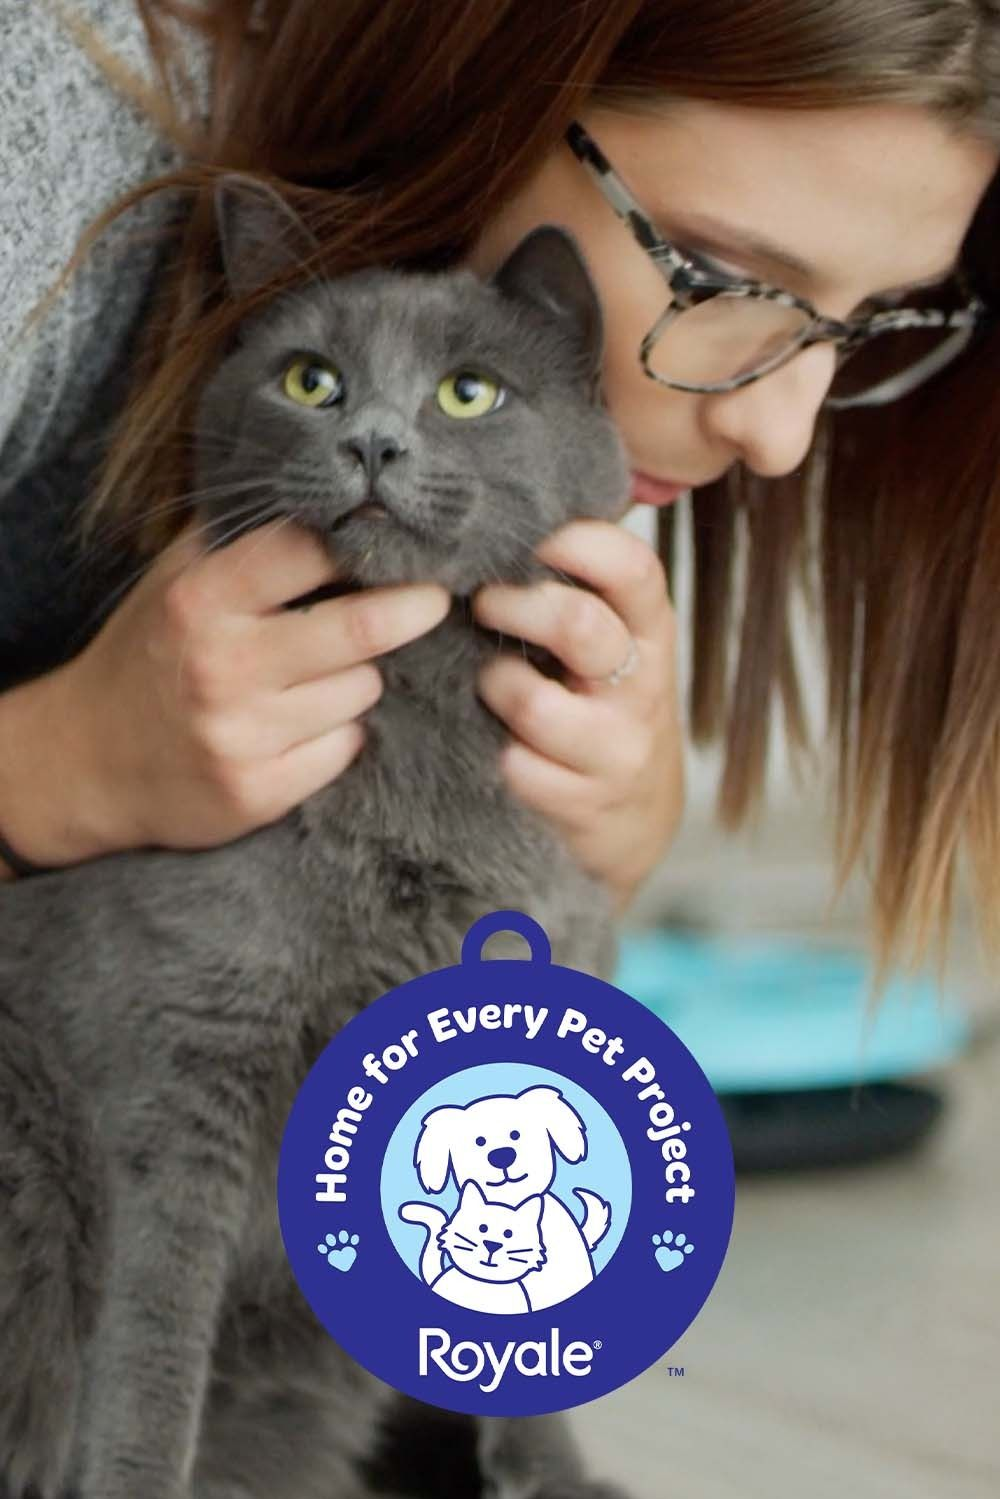 ROYALE® Home for Every Pet Project